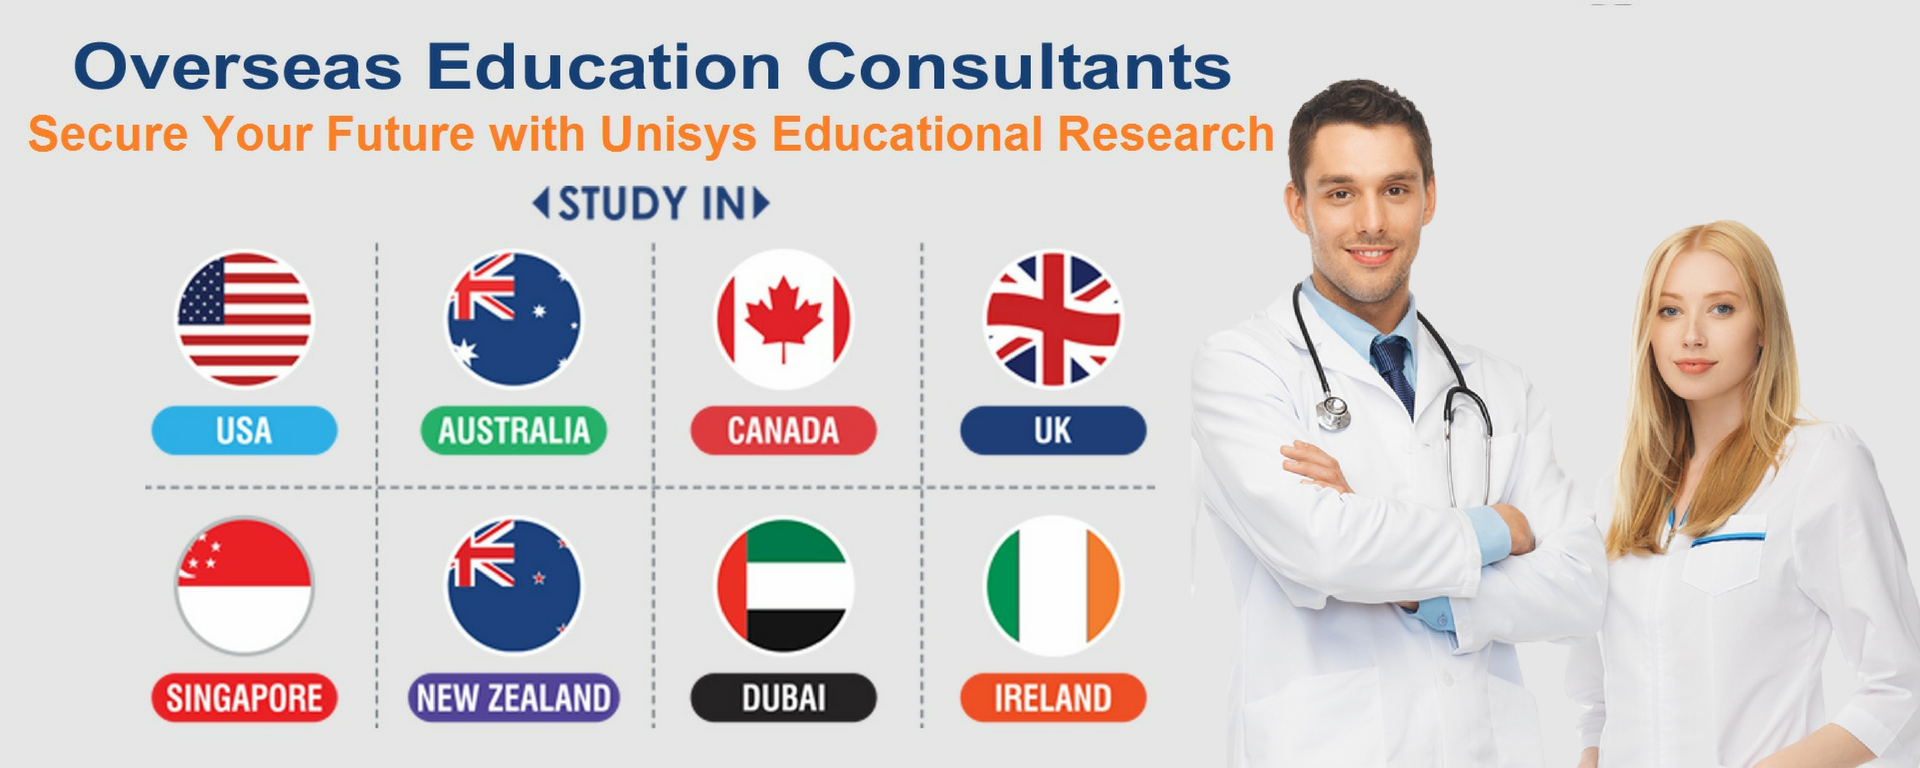 Reason Why Student Should Approach Overseas Education Consultants to Study Abroad